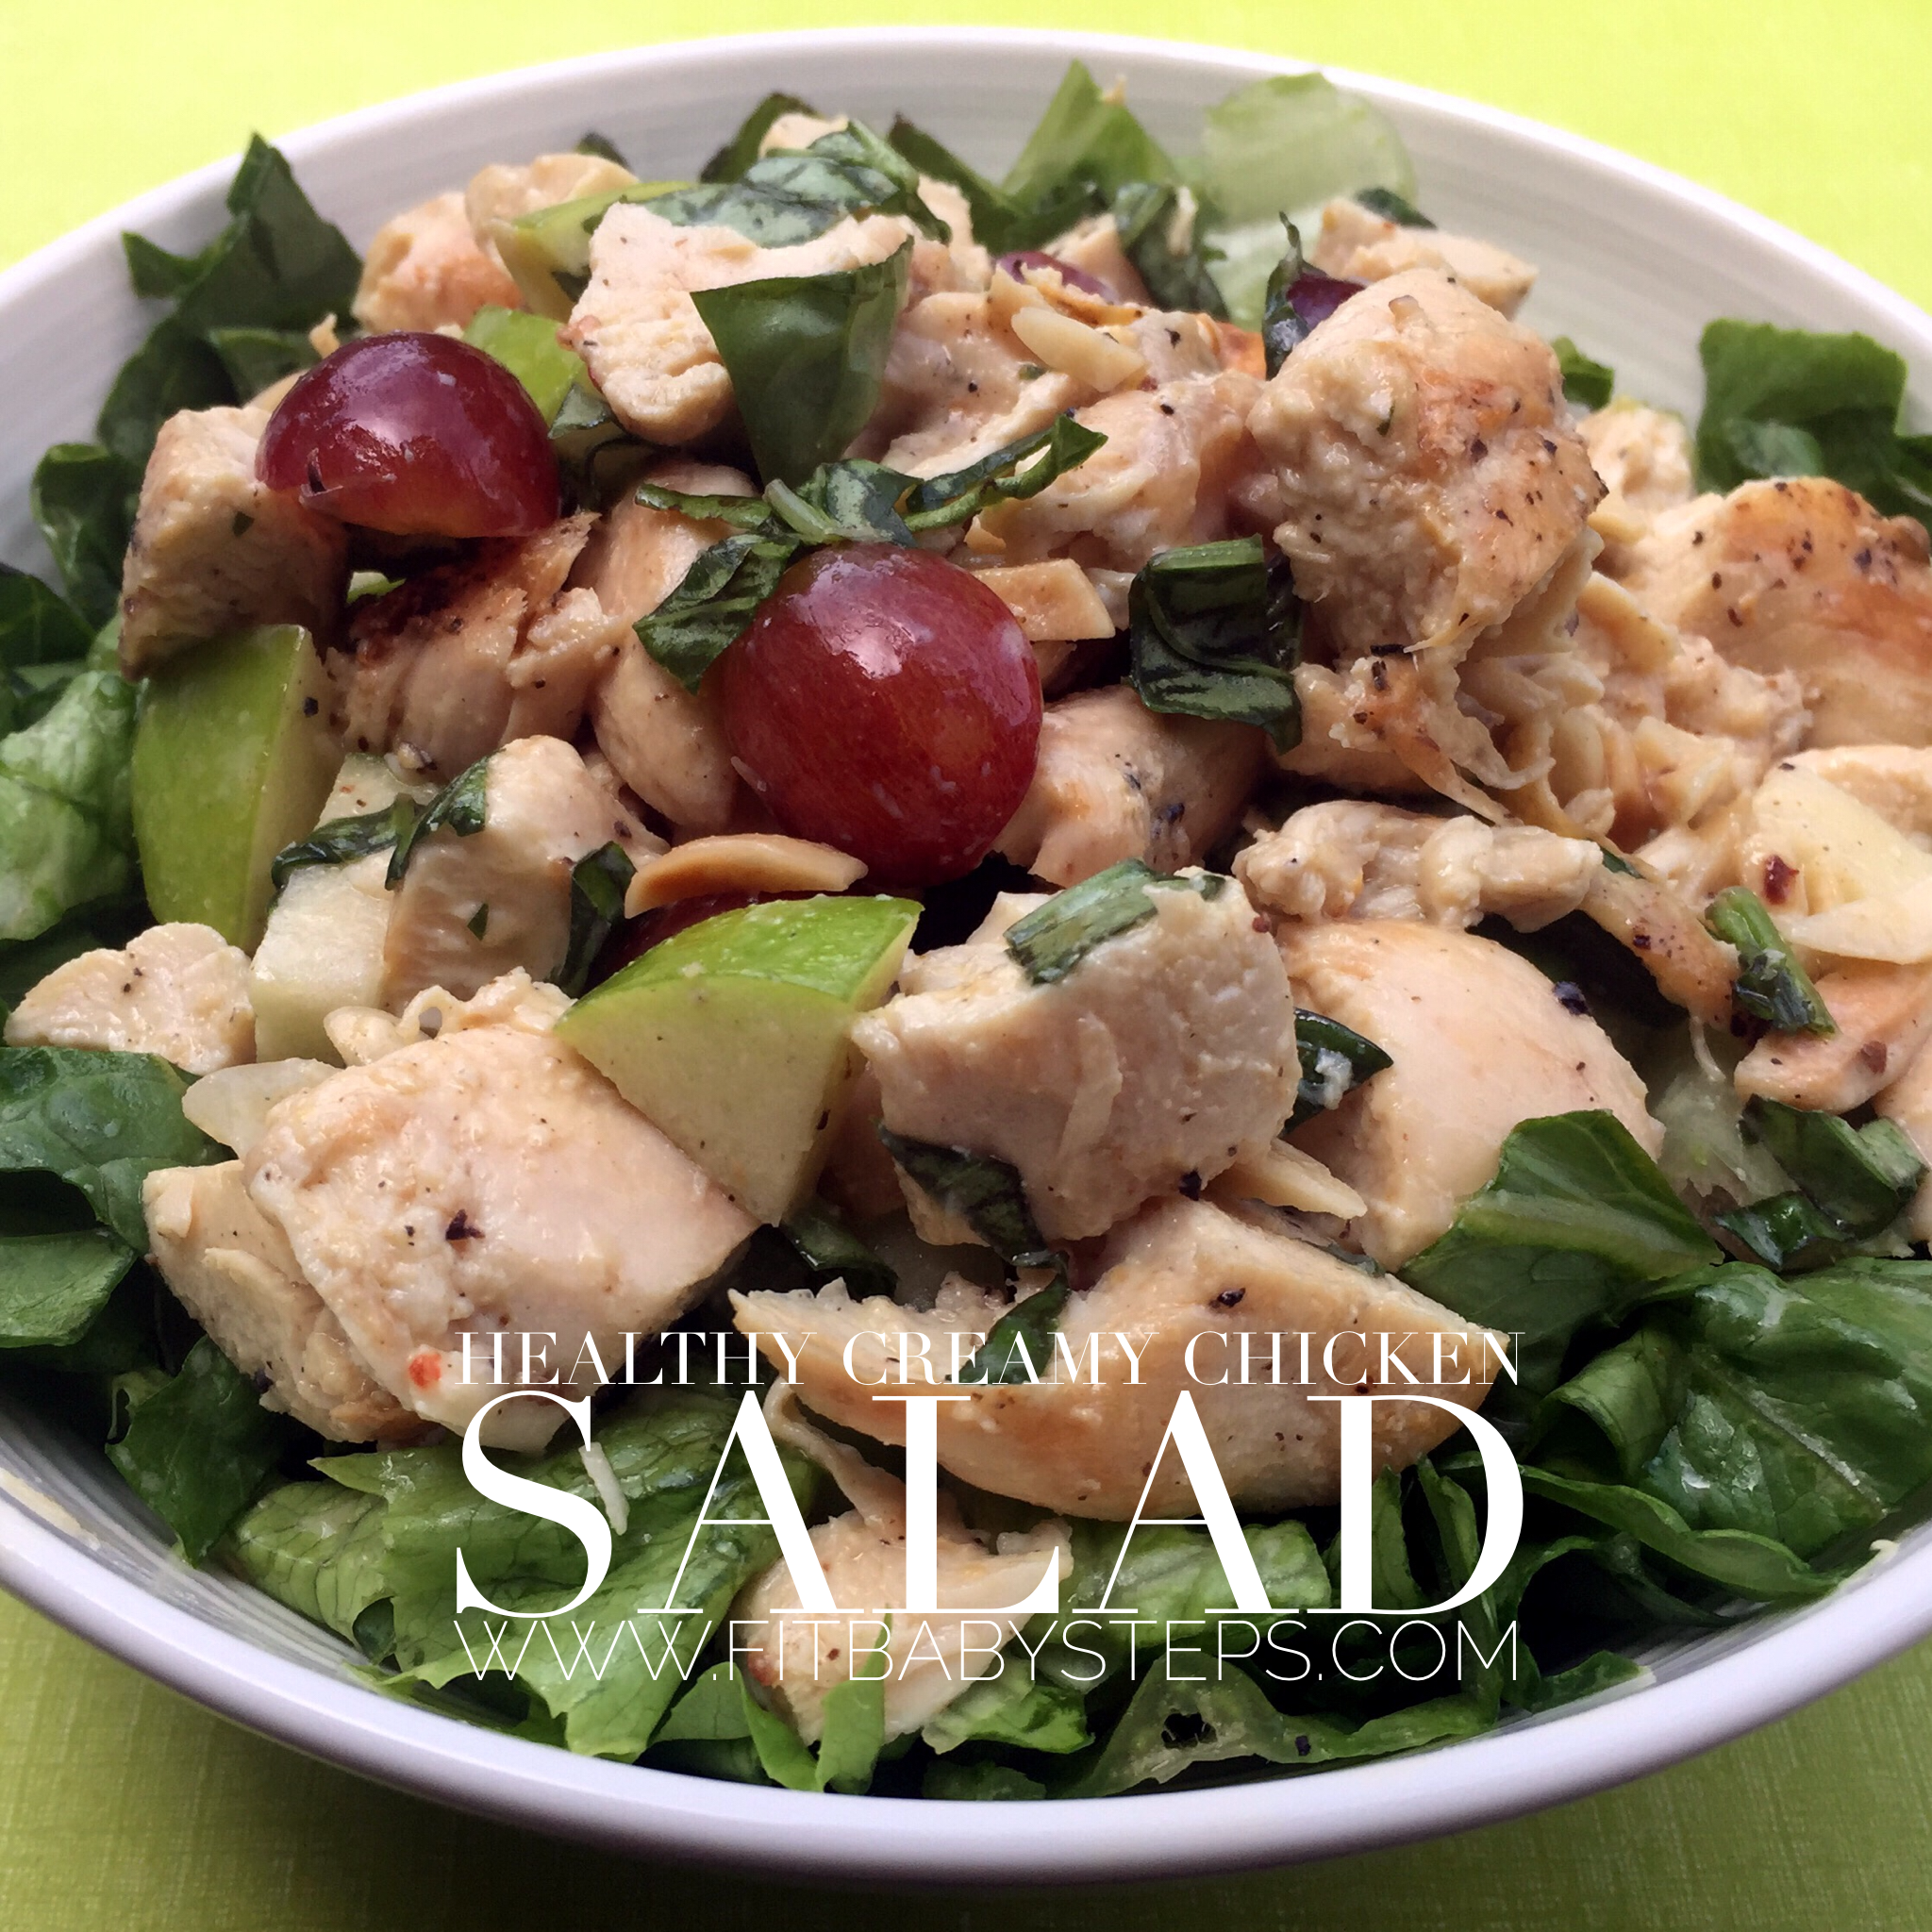 Salad With Grapes, Apples, Almonds And Chicken--I Just